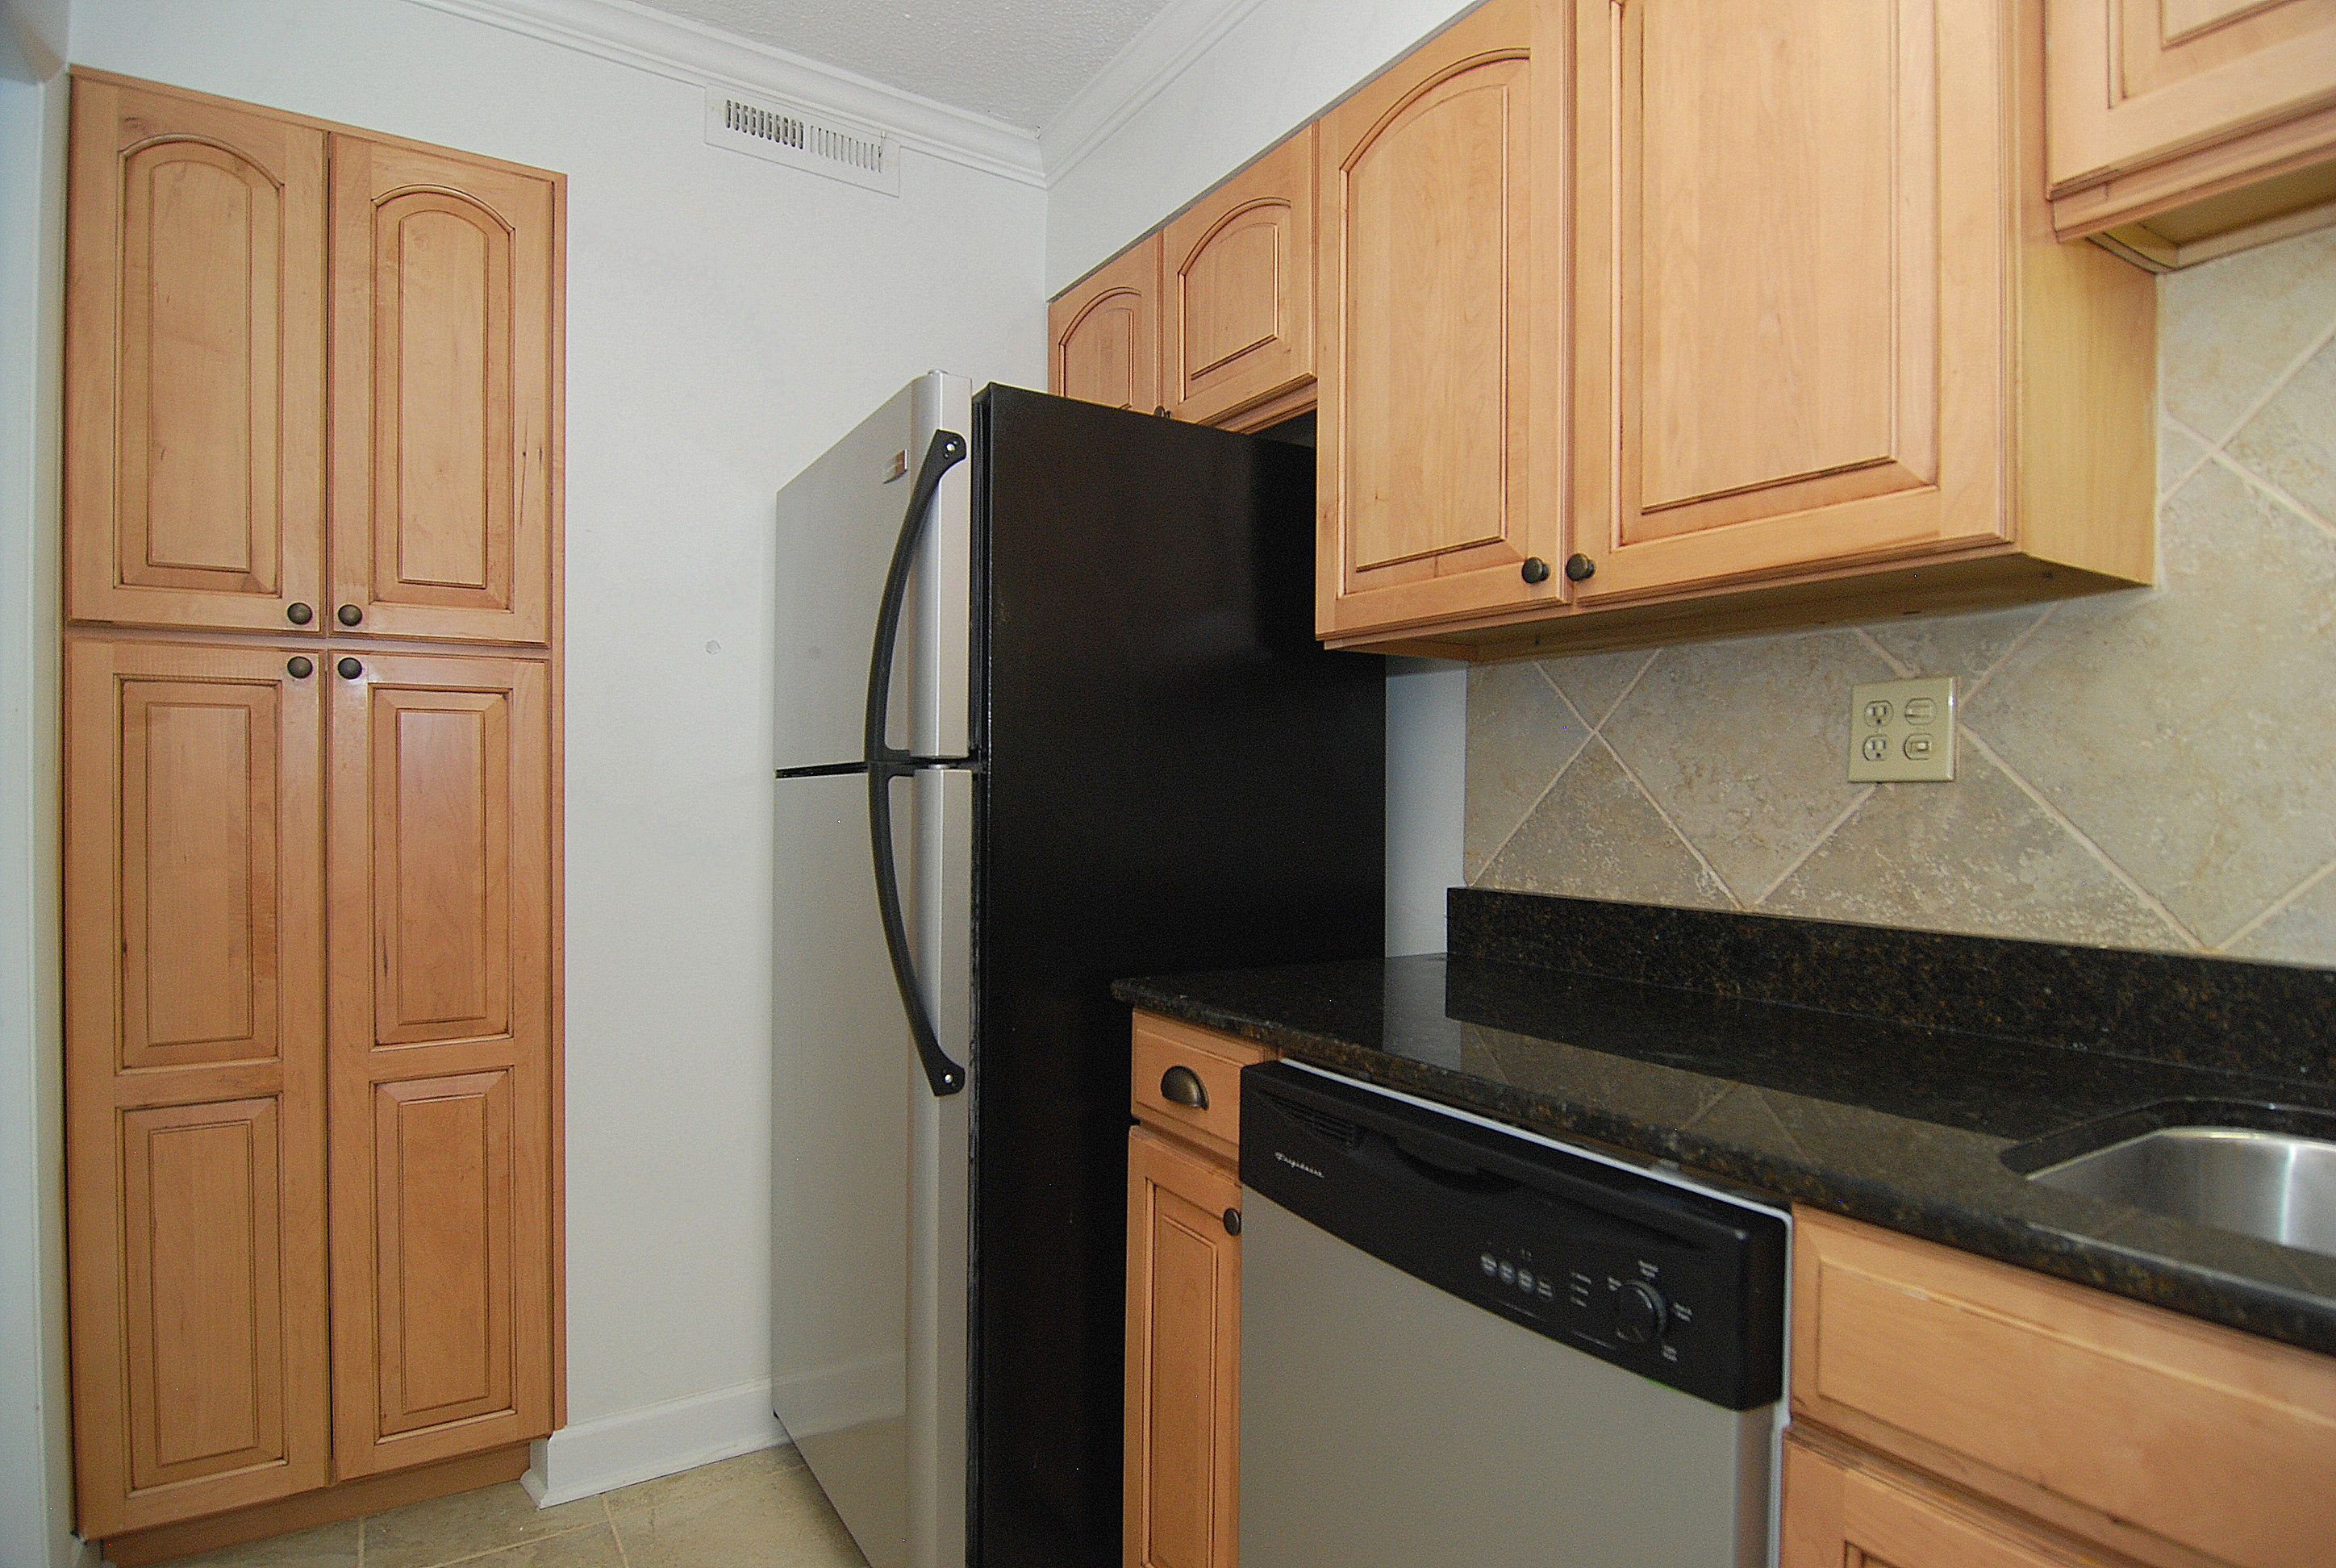 Middleborough Offices - Unit 12 F Kitchen